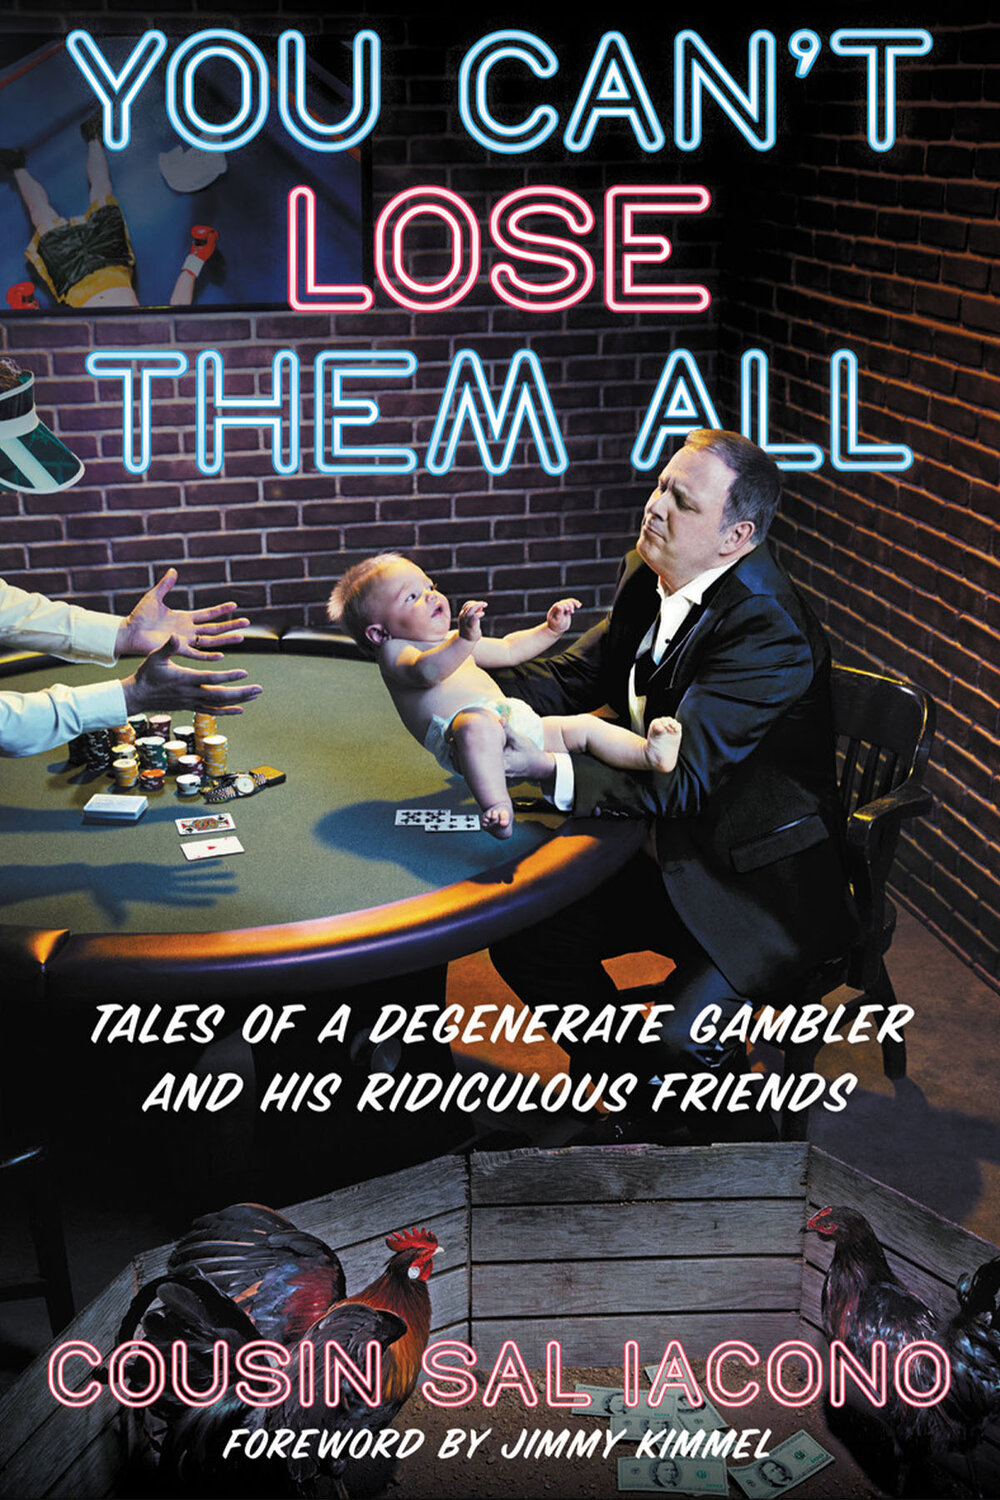 You CAn't Lose Them All: Tales of a Degenerate Gambler and His Ridiculous Friends by Cousin Sal Iacono